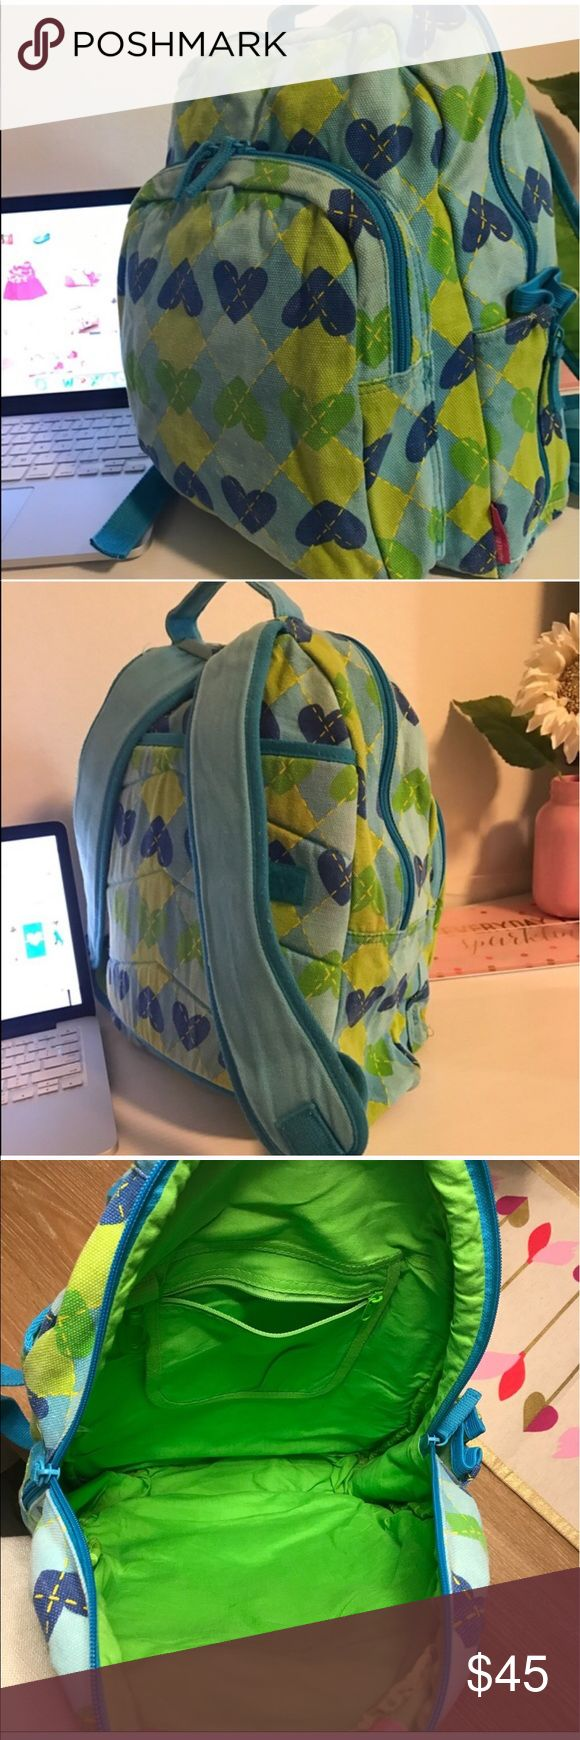 AGATHA RUIZ DE LA PRADA HEARTS BACKPACK PRICE FIRM. Beautiful soft jean fabric, designer from Spain (Agatha Ruiz de la Prada), excellent used condition. Adjustable straps, padded back and straps. Can be used to stack on a suit case. Pocket in front and on the side. Jean fabric super sturdy. Color: blue and green. 💗Condition: EUC, No flaws, no rips, holes or stains 💗Smoke free home 💗No trades, No returns 💗Shipping next day 💗All transactions video recorded to ensure quality.  💗Ask all…